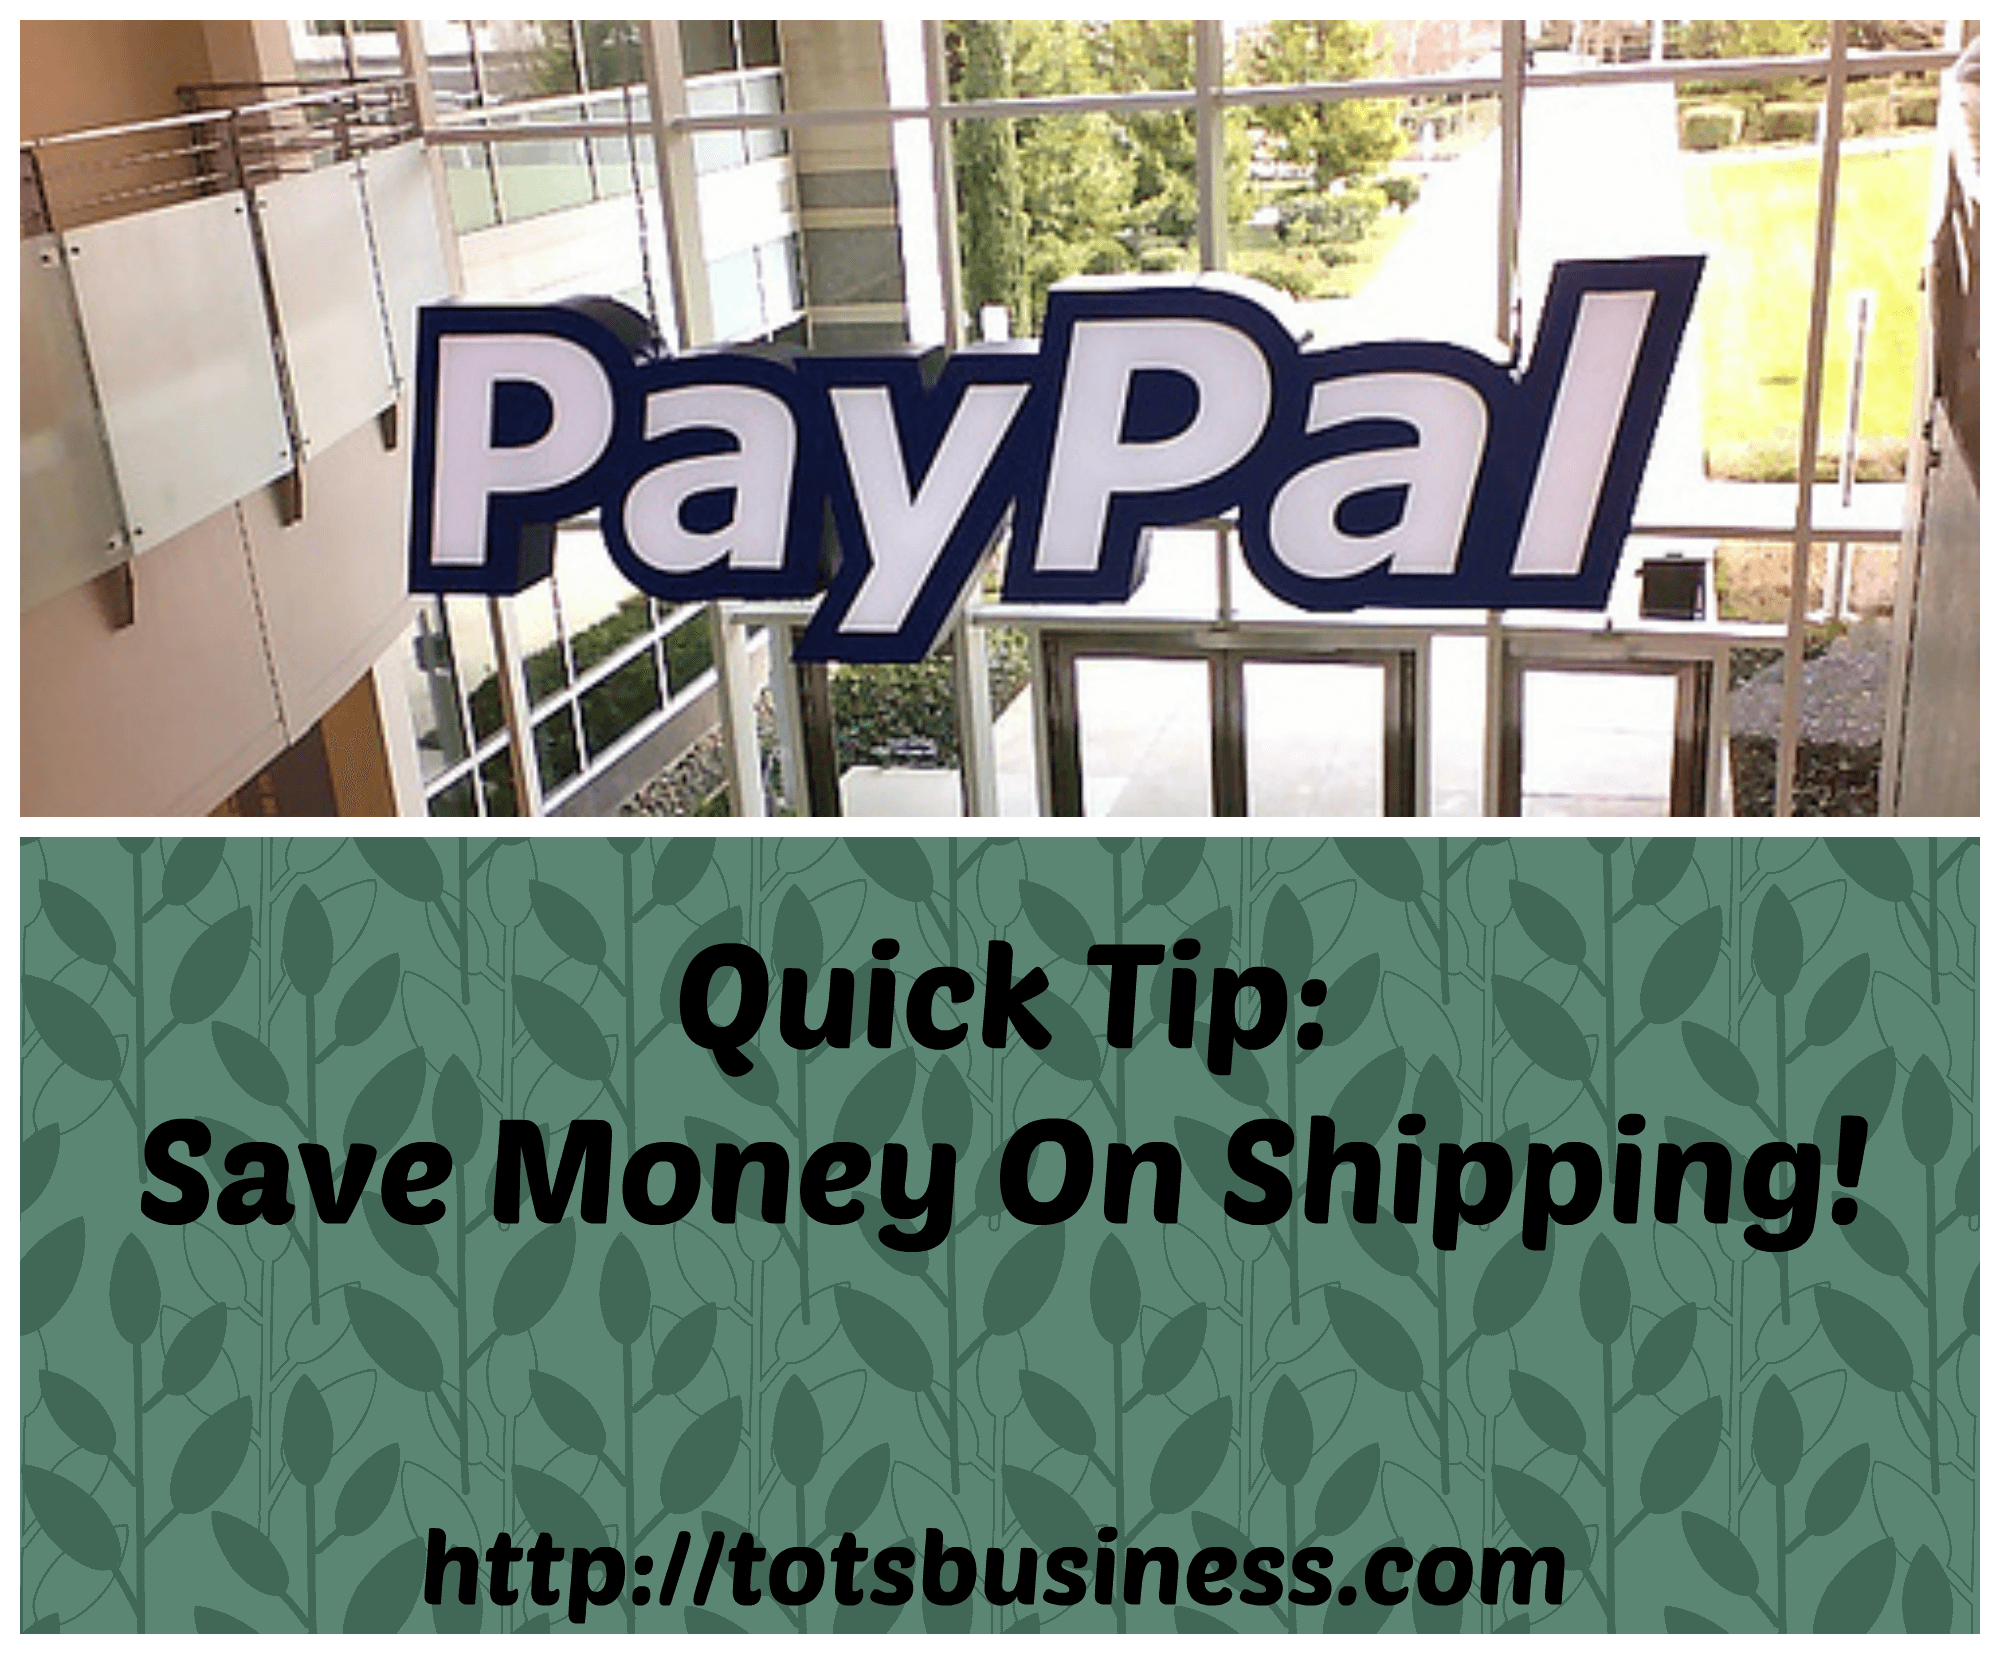 Thinking Outside The Sandbox: Business Paypal-quick-tip Quick Tip: Save Money On Shipping! All Posts Finances  usps ups small business save on shipping paypal ship now paypal fedex cheapest shipping canada post